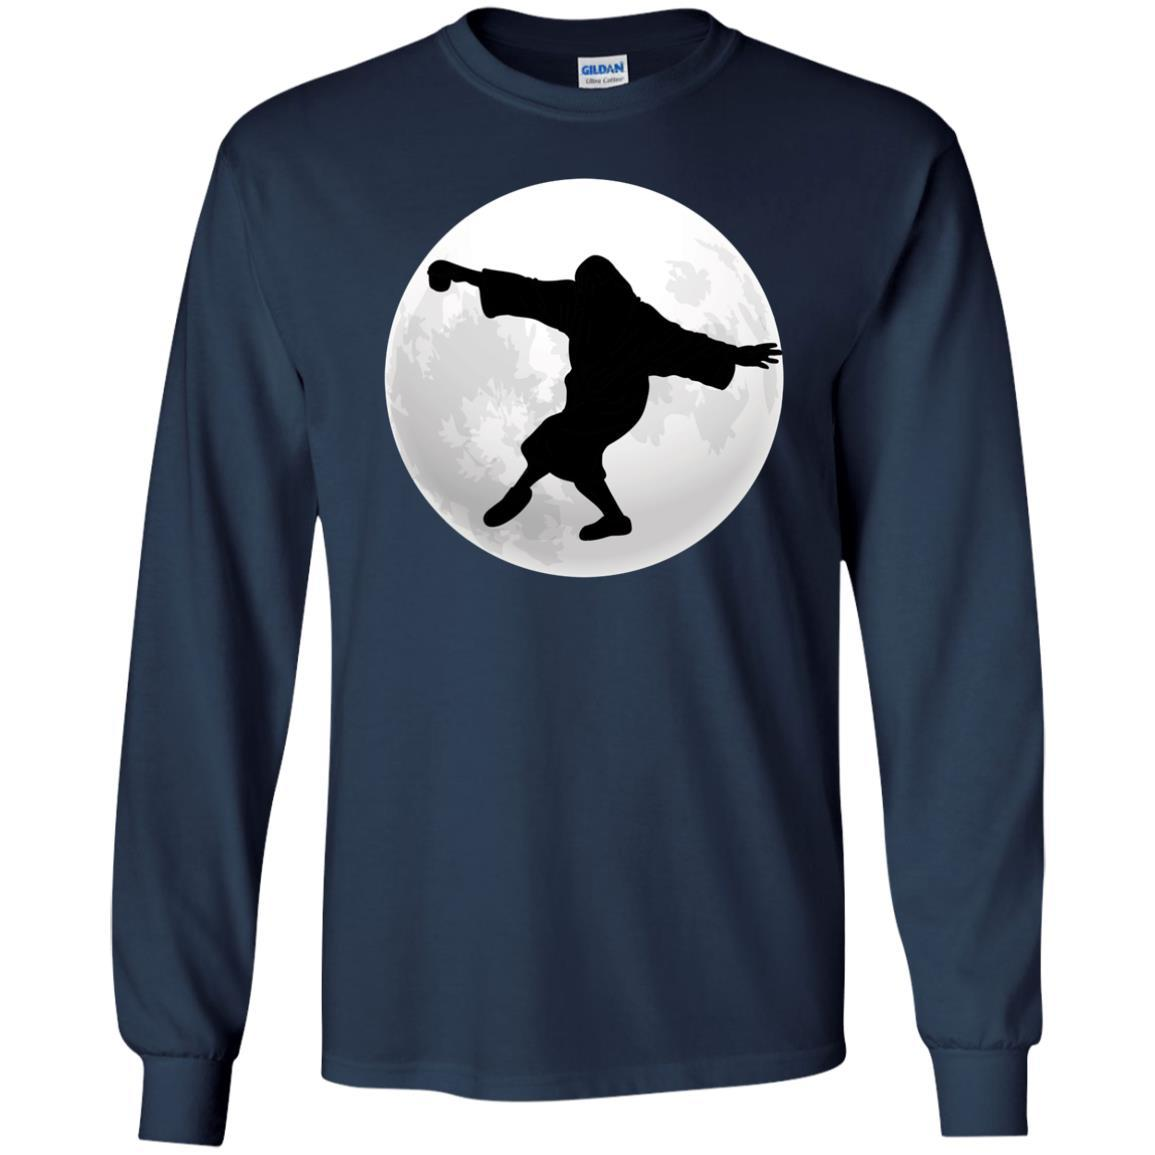 T-Shirts - Abide Moon Long Sleeve